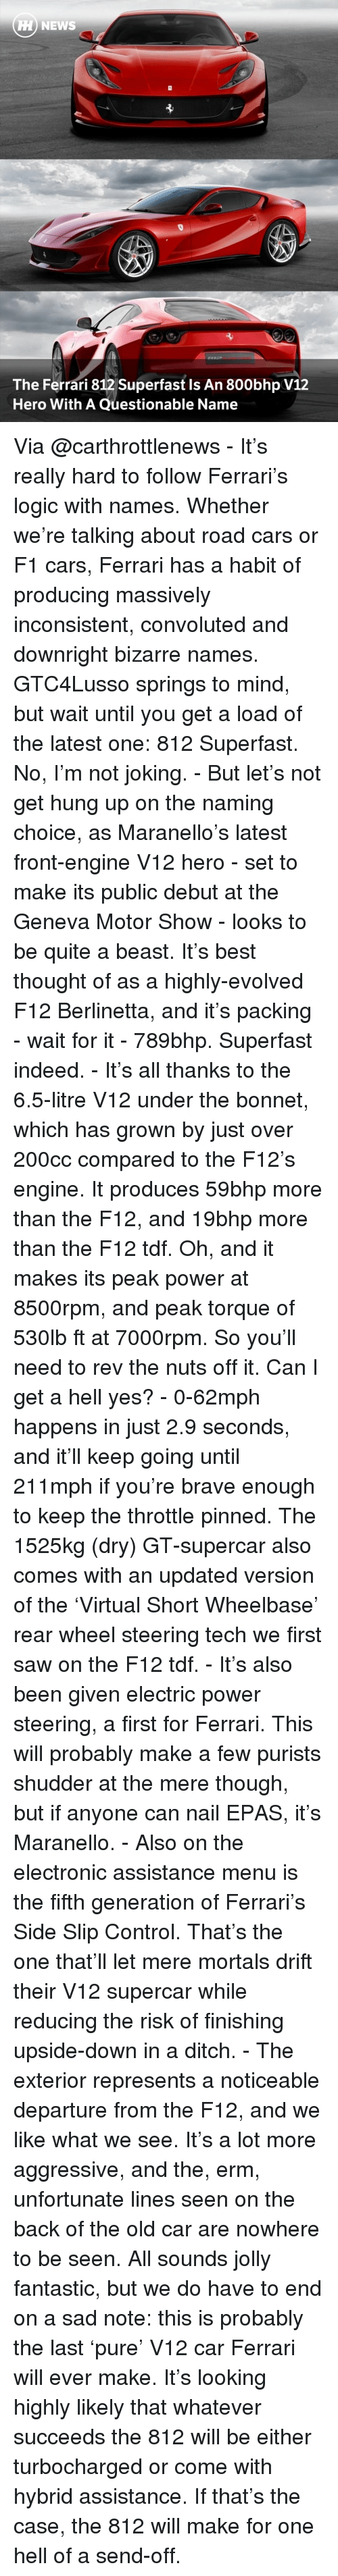 throttle: A NEWS  The Ferrari 812 Superfast Is An 800bhp V12  Hero With A Questionable Name Via @carthrottlenews - It's really hard to follow Ferrari's logic with names. Whether we're talking about road cars or F1 cars, Ferrari has a habit of producing massively inconsistent, convoluted and downright bizarre names. GTC4Lusso springs to mind, but wait until you get a load of the latest one: 812 Superfast. No, I'm not joking. - But let's not get hung up on the naming choice, as Maranello's latest front-engine V12 hero - set to make its public debut at the Geneva Motor Show - looks to be quite a beast. It's best thought of as a highly-evolved F12 Berlinetta, and it's packing - wait for it - 789bhp. Superfast indeed. - It's all thanks to the 6.5-litre V12 under the bonnet, which has grown by just over 200cc compared to the F12's engine. It produces 59bhp more than the F12, and 19bhp more than the F12 tdf. Oh, and it makes its peak power at 8500rpm, and peak torque of 530lb ft at 7000rpm. So you'll need to rev the nuts off it. Can I get a hell yes? - 0-62mph happens in just 2.9 seconds, and it'll keep going until 211mph if you're brave enough to keep the throttle pinned. The 1525kg (dry) GT-supercar also comes with an updated version of the 'Virtual Short Wheelbase' rear wheel steering tech we first saw on the F12 tdf. - It's also been given electric power steering, a first for Ferrari. This will probably make a few purists shudder at the mere though, but if anyone can nail EPAS, it's Maranello. - Also on the electronic assistance menu is the fifth generation of Ferrari's Side Slip Control. That's the one that'll let mere mortals drift their V12 supercar while reducing the risk of finishing upside-down in a ditch. - The exterior represents a noticeable departure from the F12, and we like what we see. It's a lot more aggressive, and the, erm, unfortunate lines seen on the back of the old car are nowhere to be seen. All sounds jolly fantastic, but we do have to end on a sa